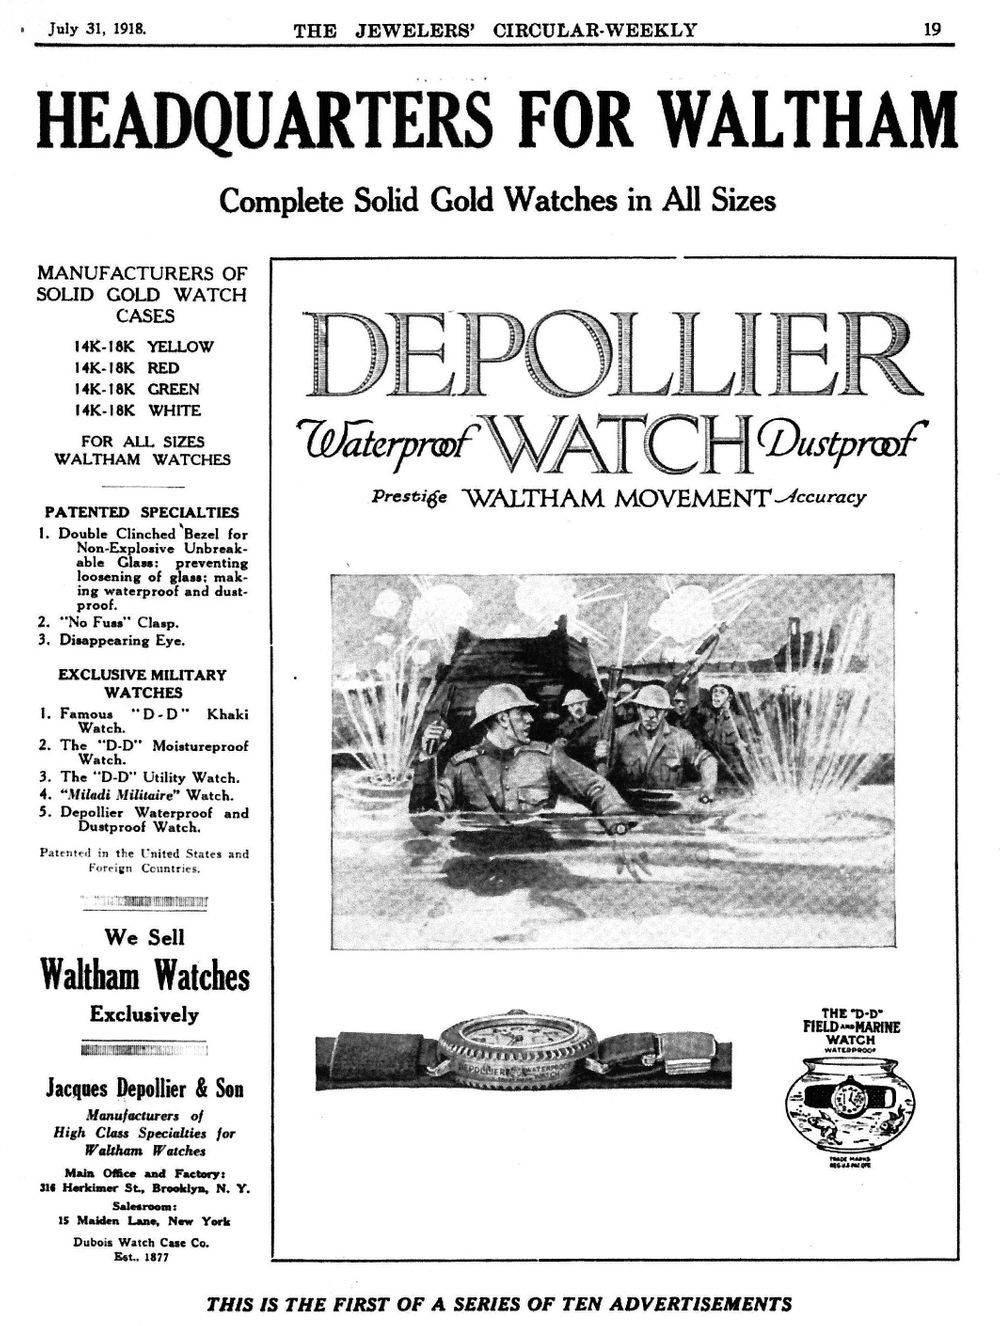 """The 1st advertisement published for the Waltham Depollier """"Field & Marine"""" Waterproof Watch. July 31, 1918."""